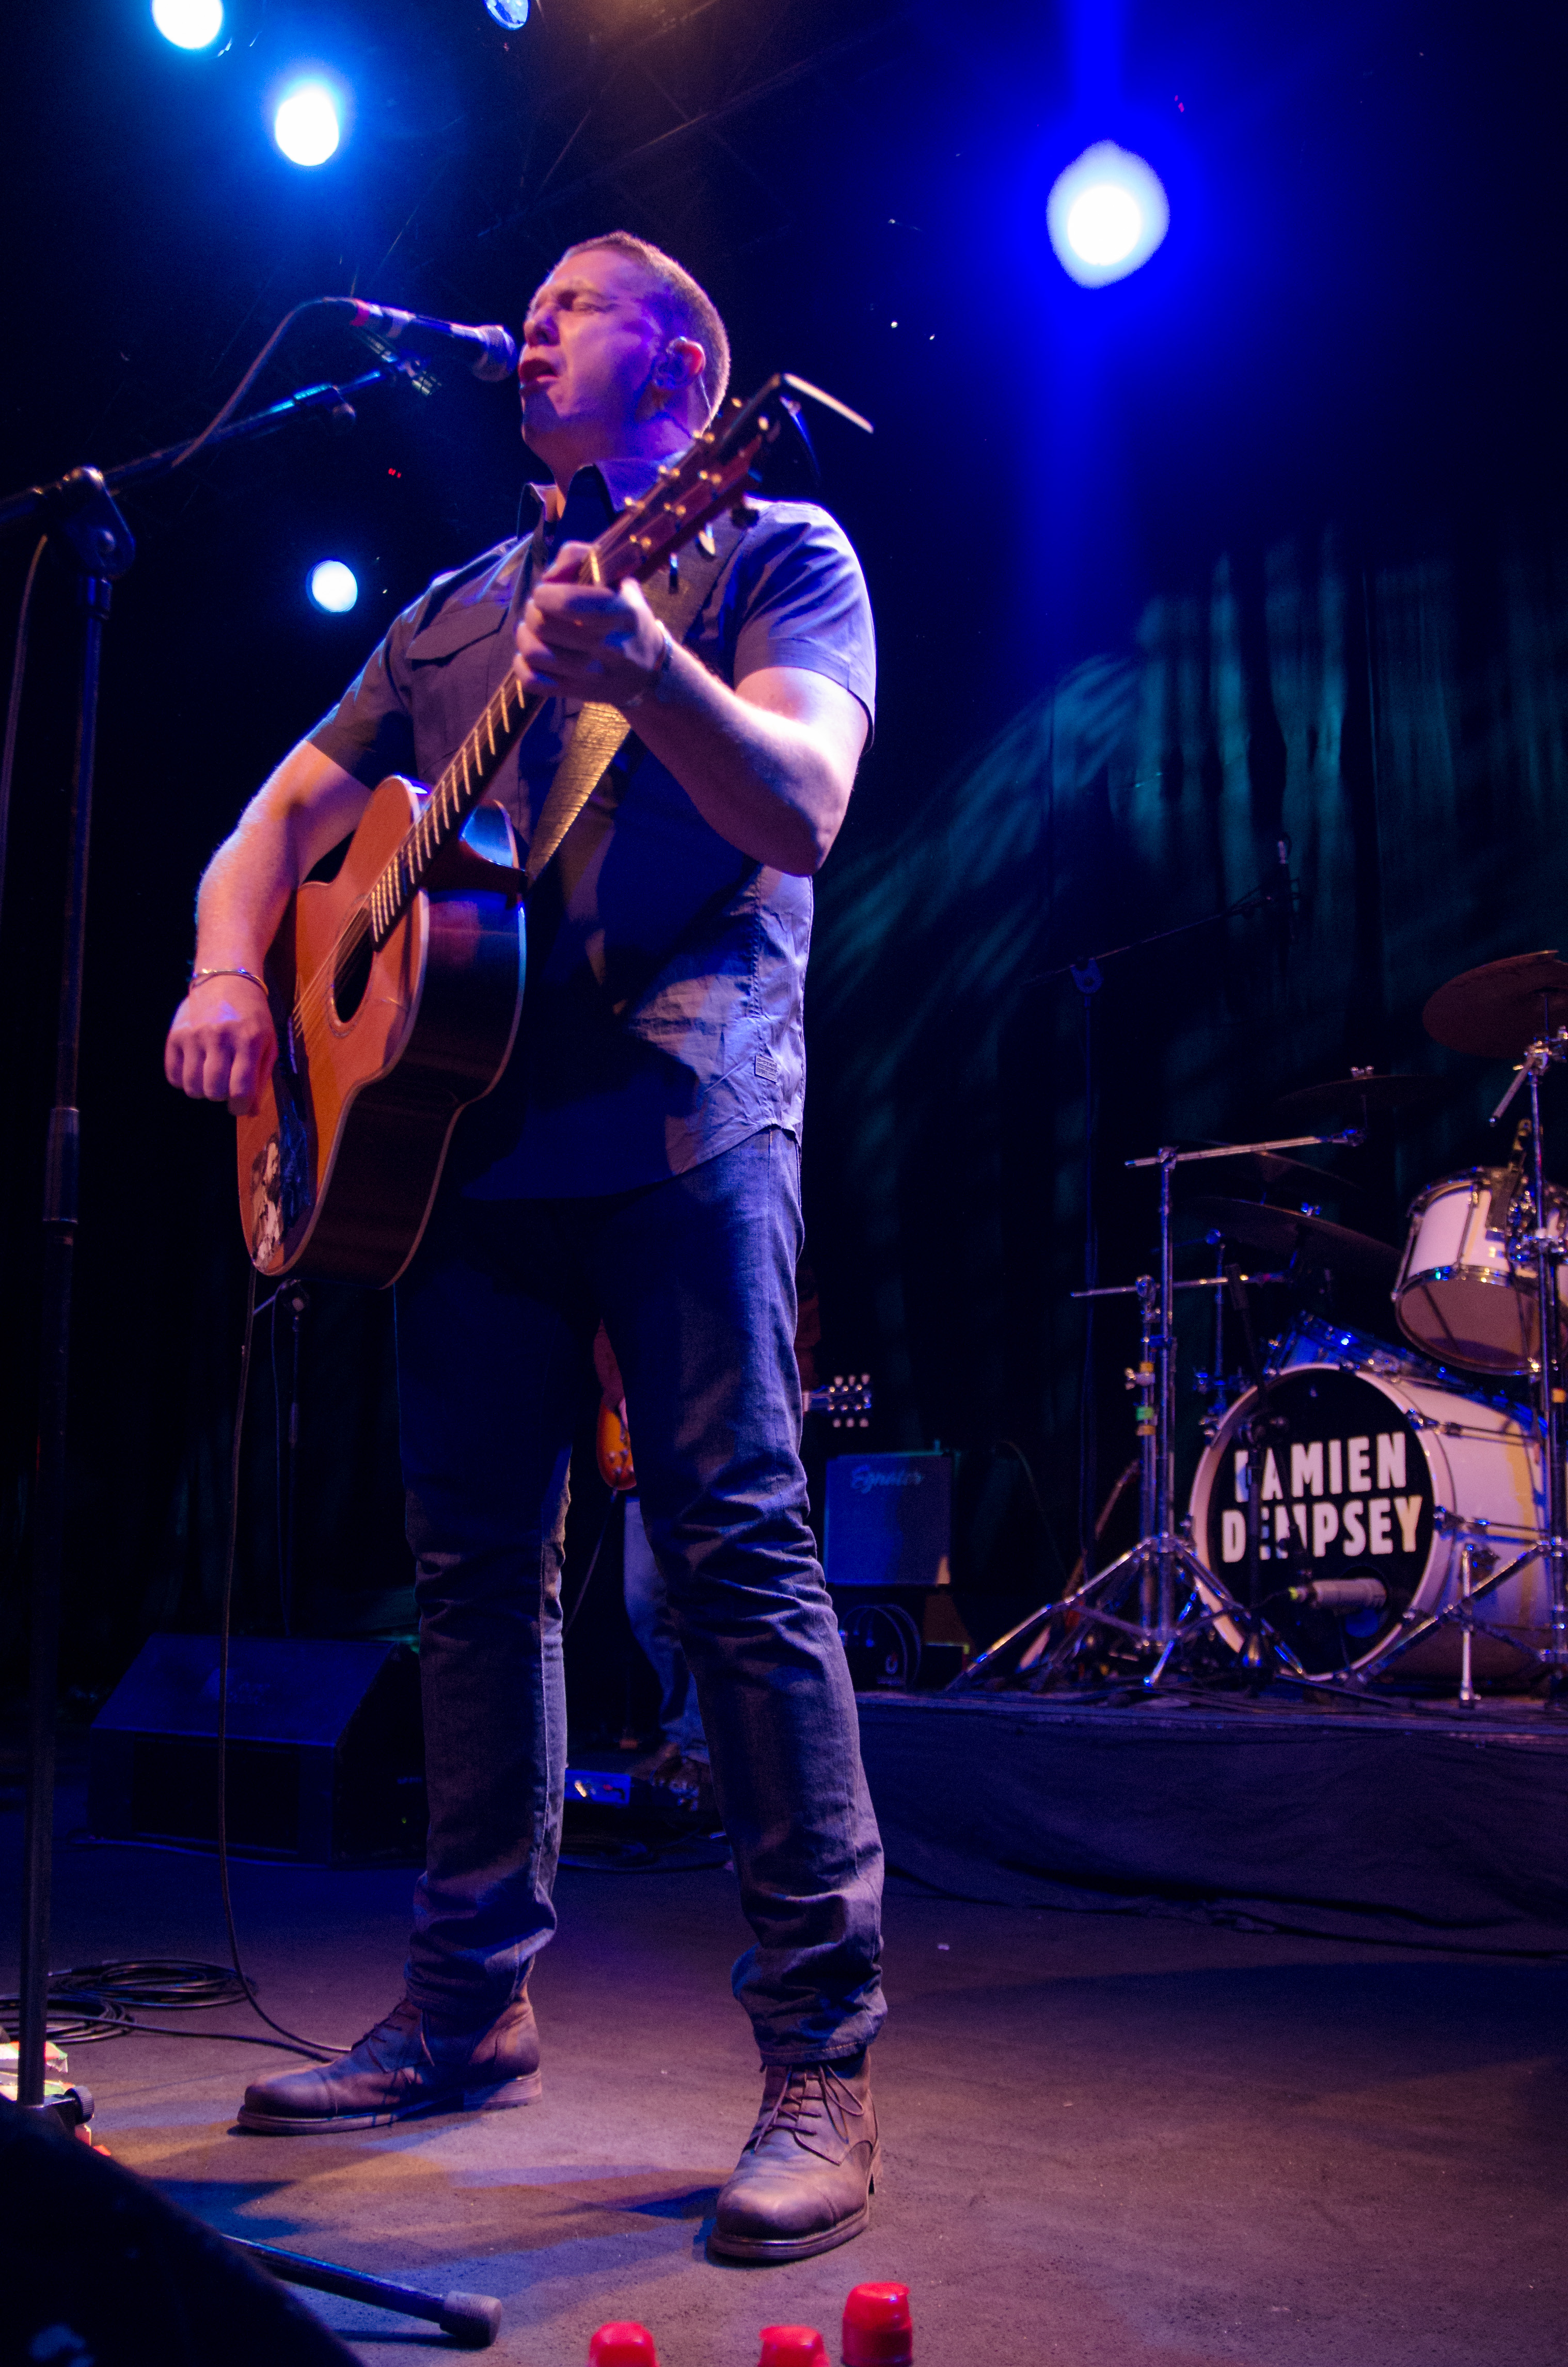 damien-dempsey-at-vicar-street-by-sean-smyth-19-12-15-7-of-34